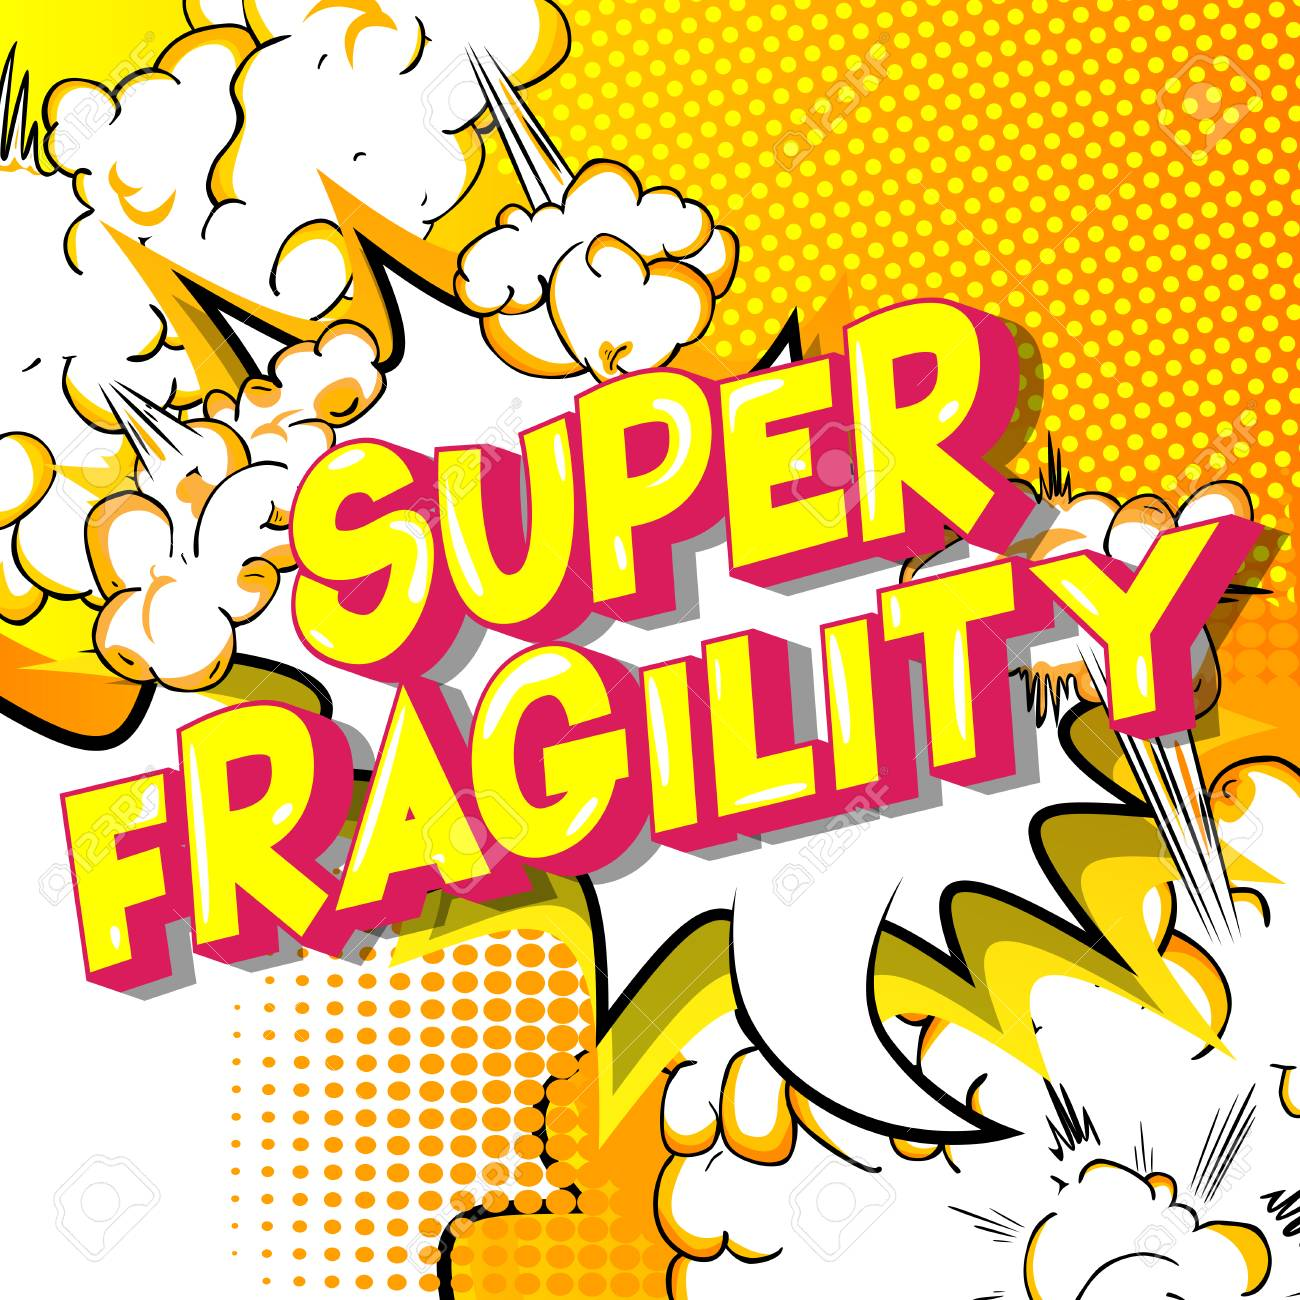 Super Fragility - Vector illustrated comic book style phrase on abstract background. - 114778283